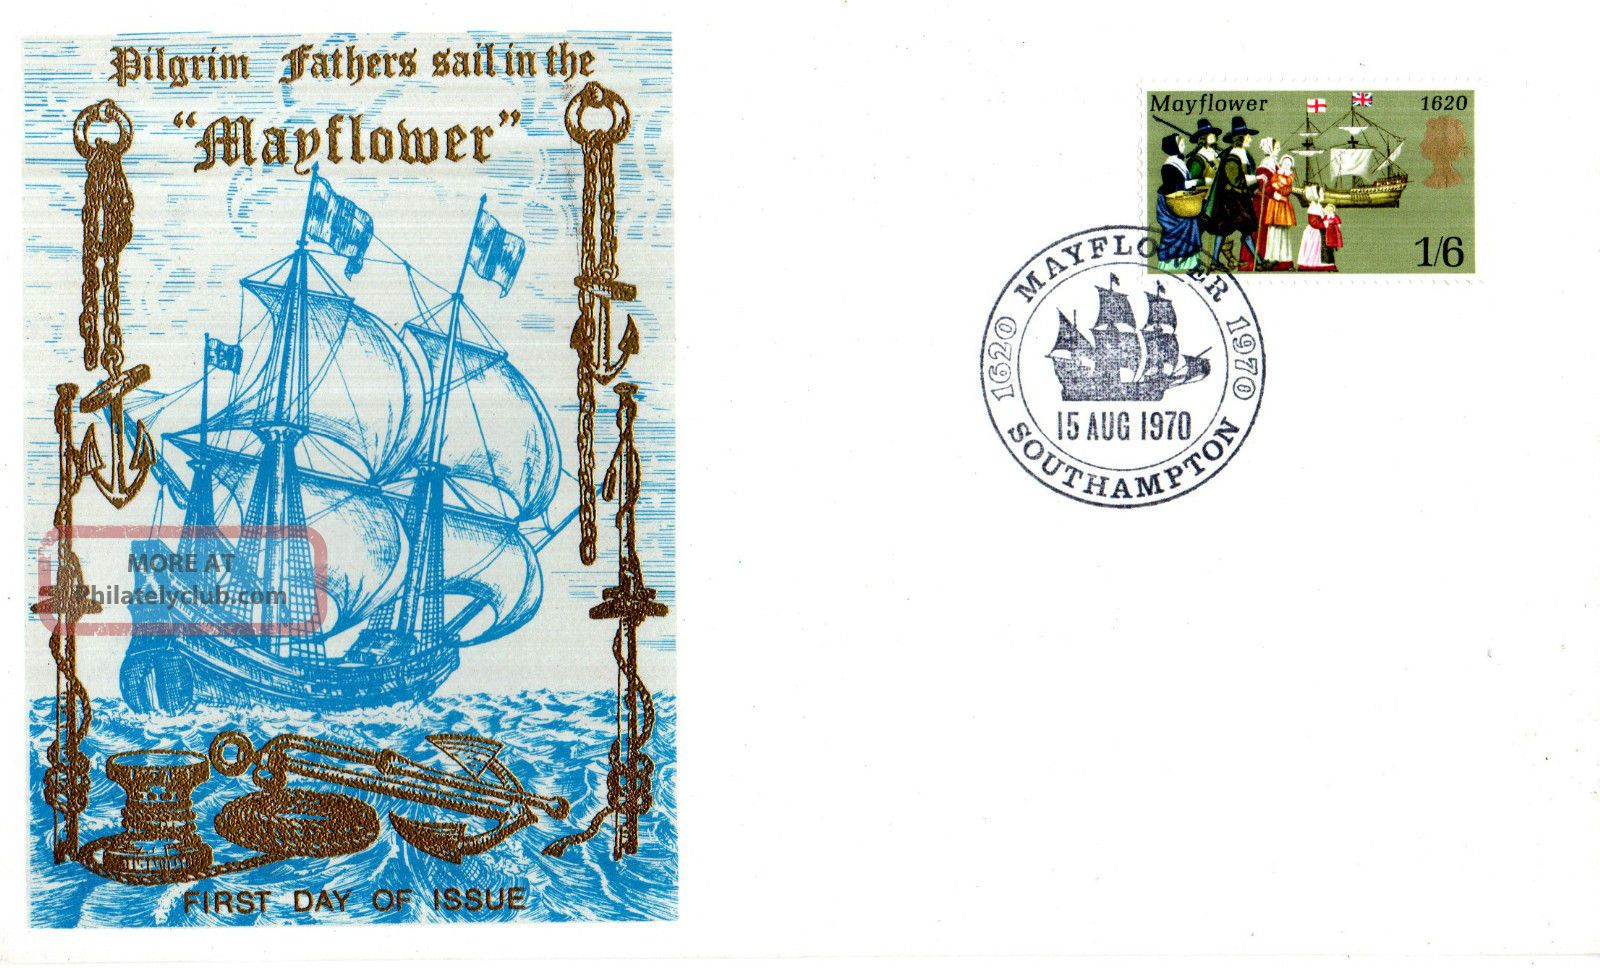 15 August 1970 Mayflower Thames Commemorative Cover Southampton Shs Transportation photo